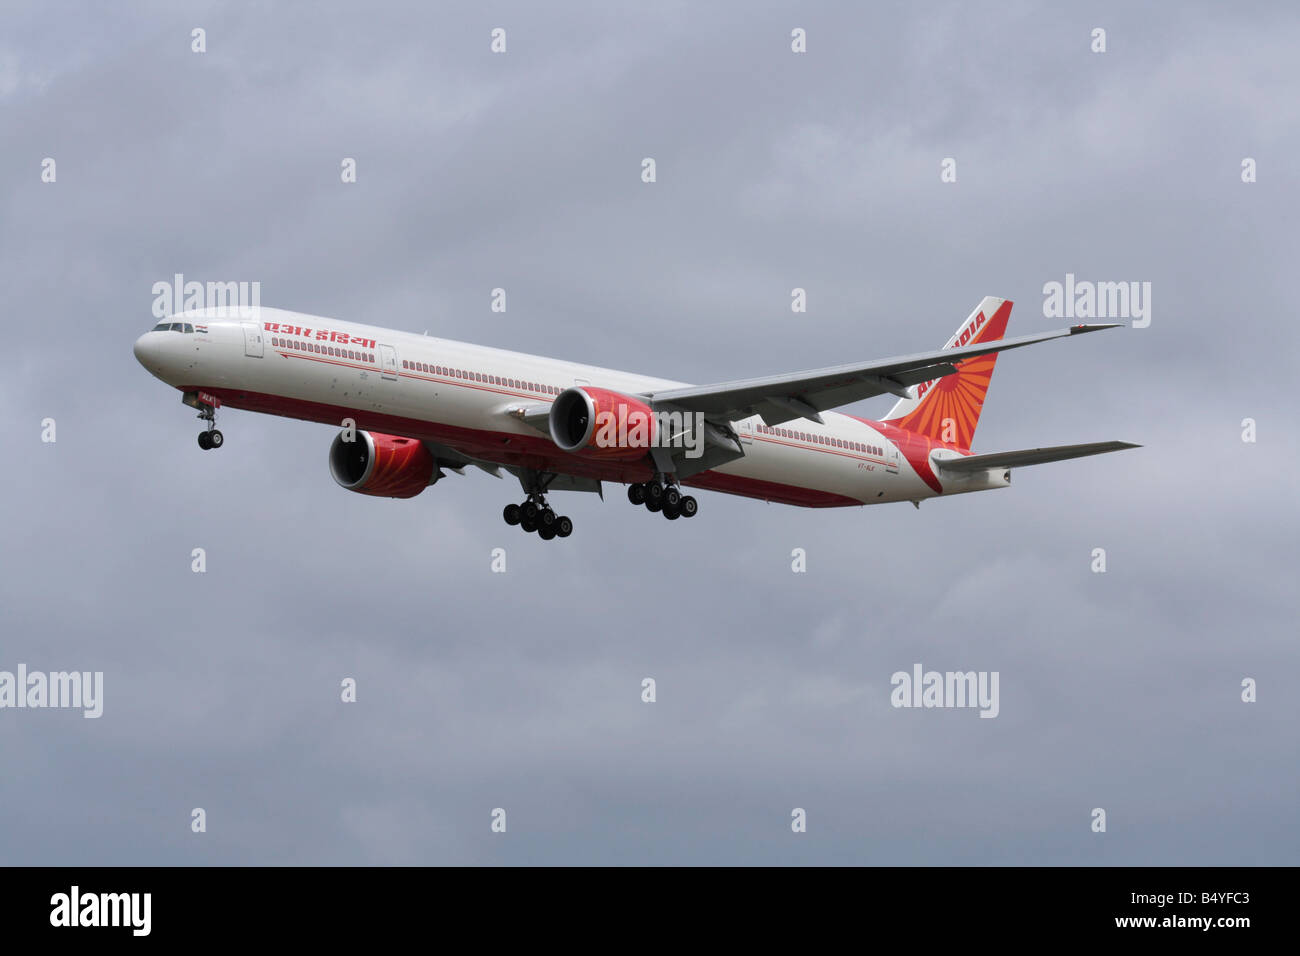 Air India Boeing 777-300ER long haul passenger jet plane on arrival at Heathrow - Stock Image